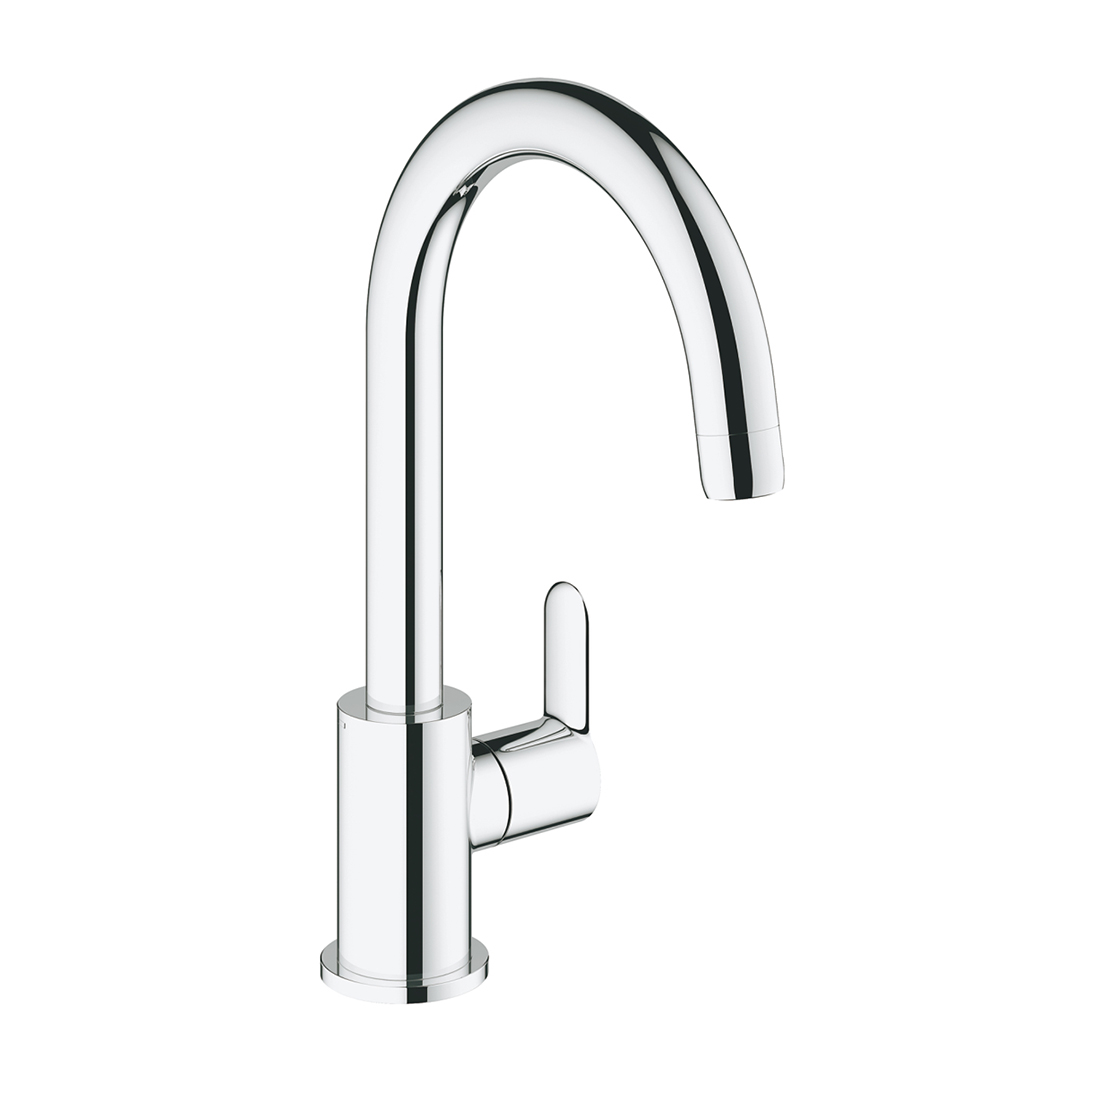 Grohe 31223000 Bauedge Sink Tap 1/2